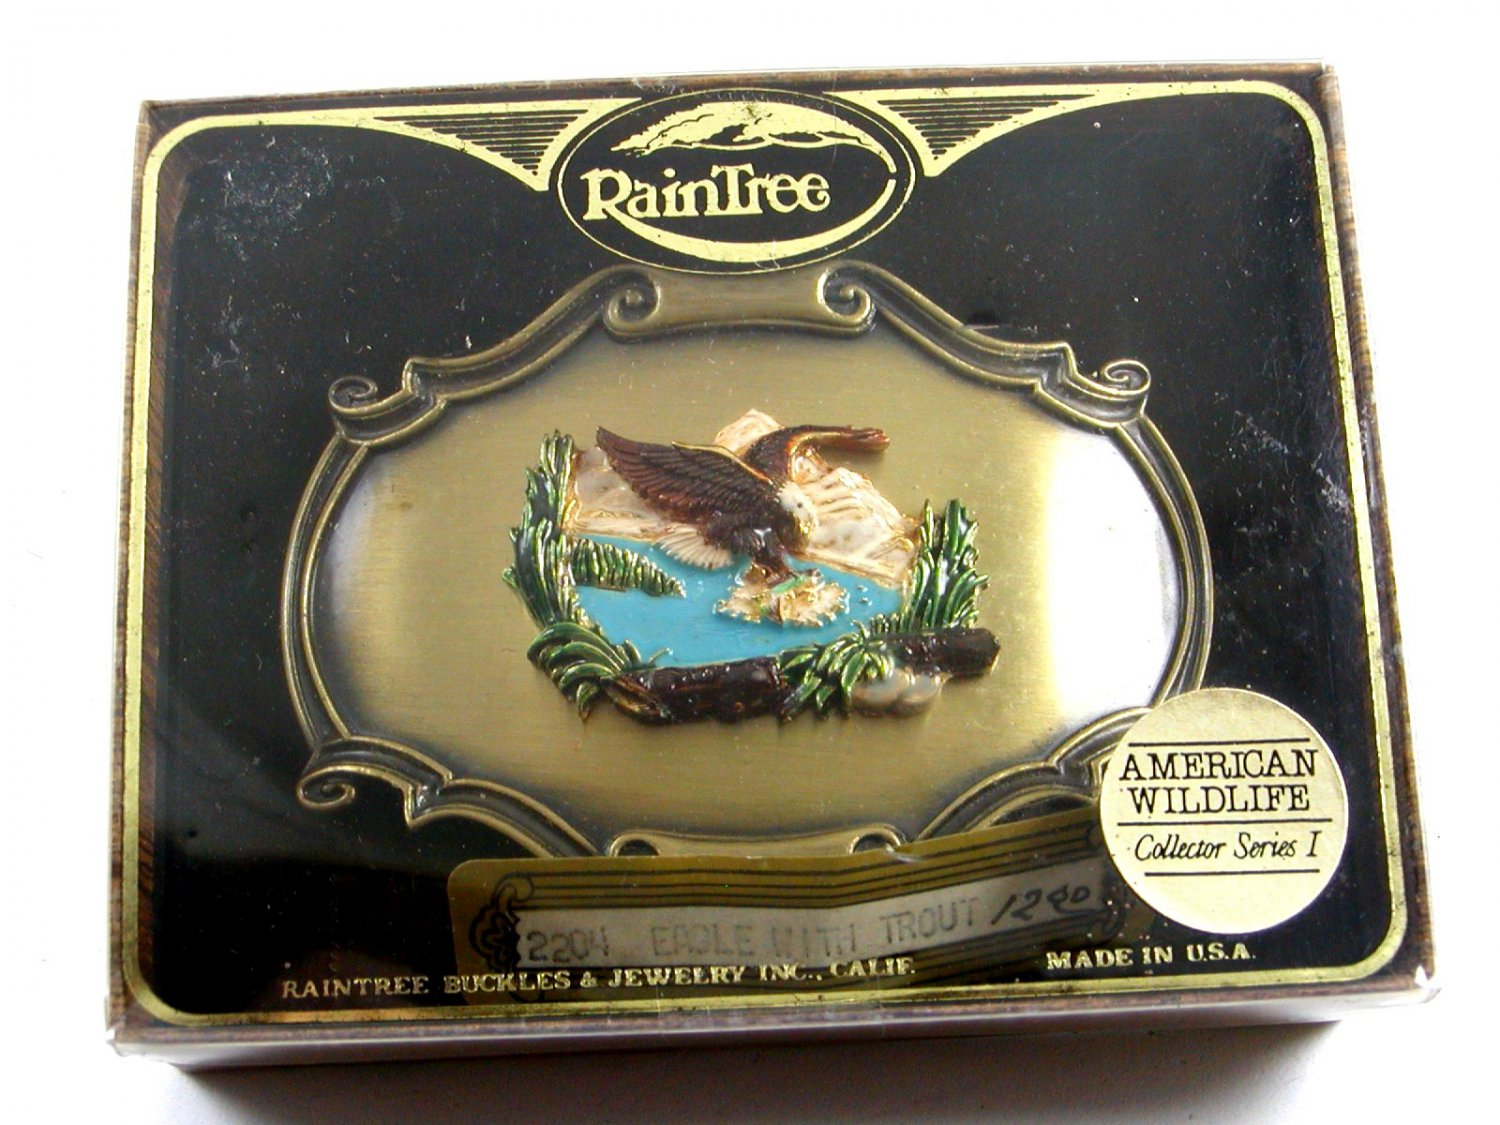 1978 American Eagle Belt Buckle Mint In Box Gold Tag by Raintree 7214